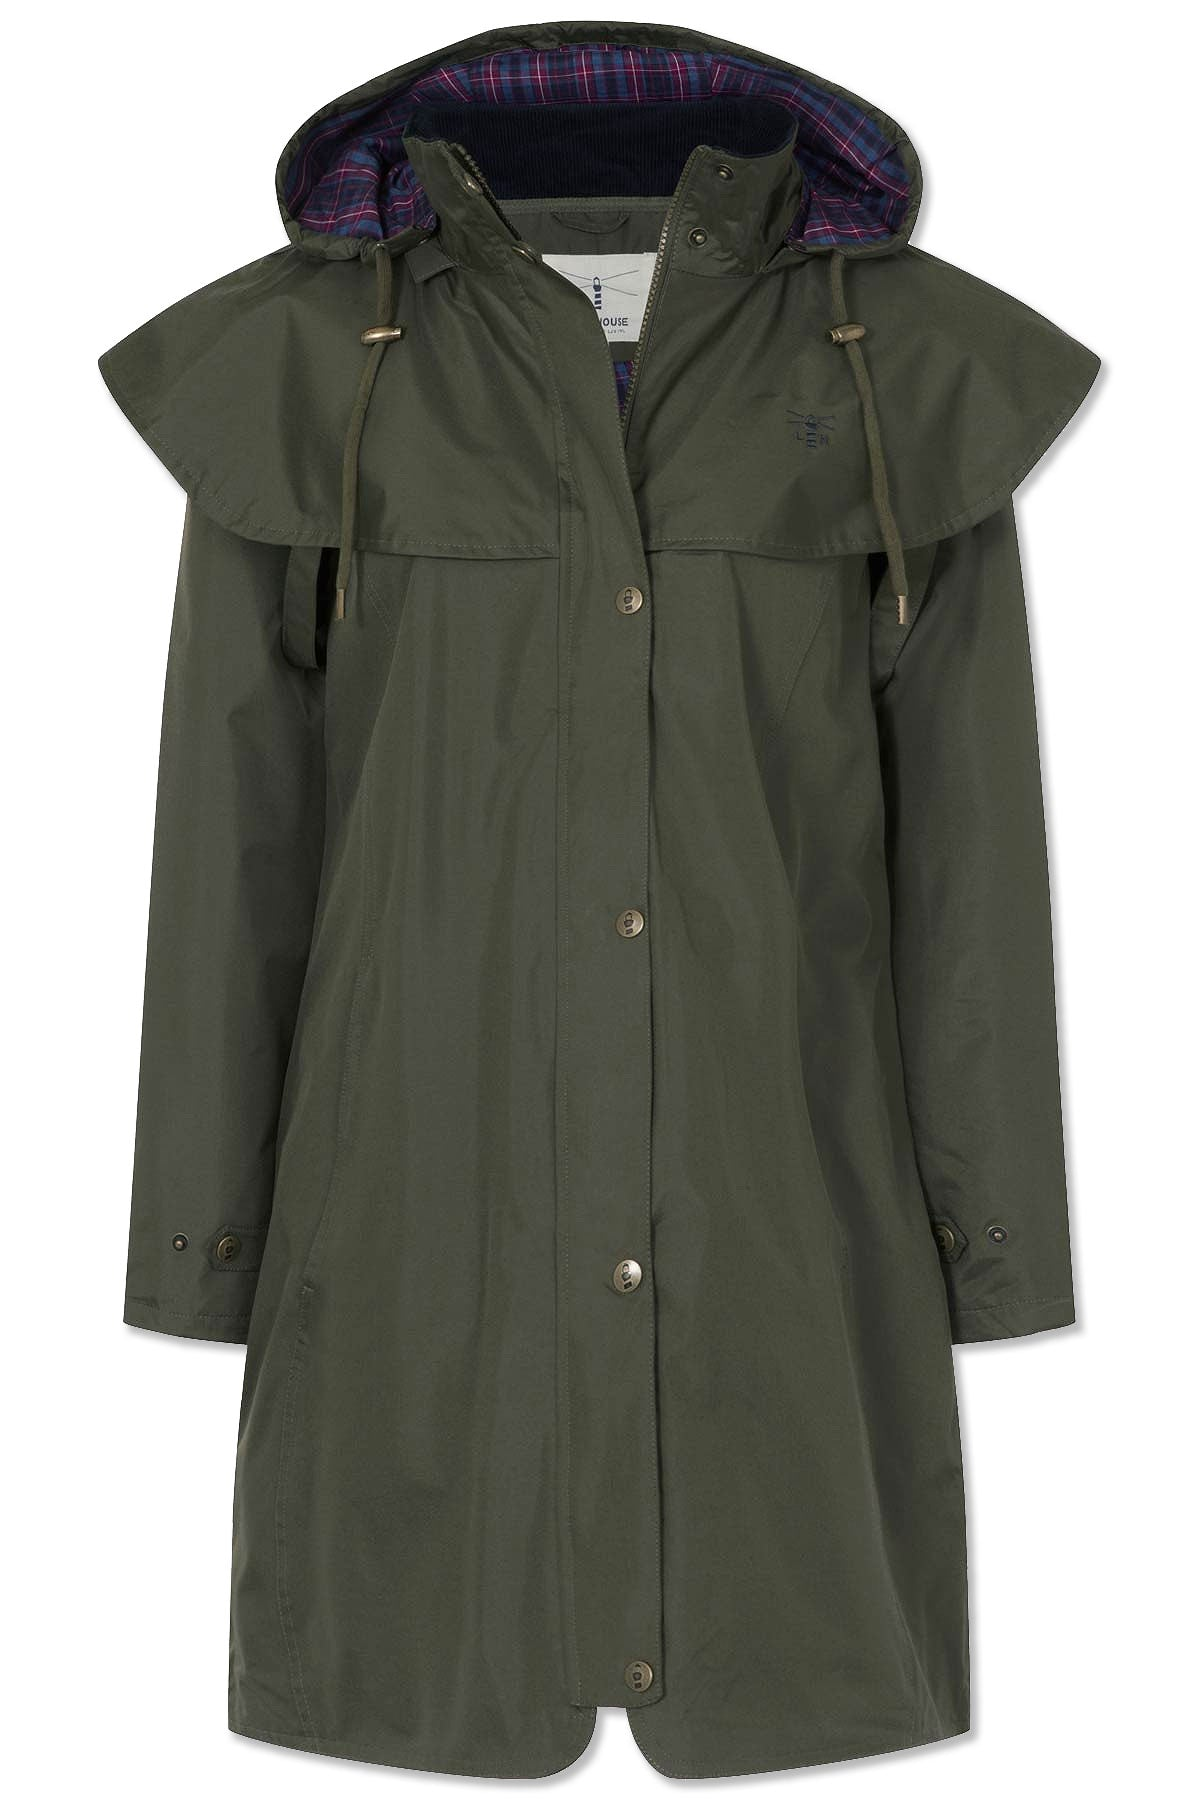 fern colour Lighthouse Outrider 3 Ladies Three Quarter Waterproof Coat